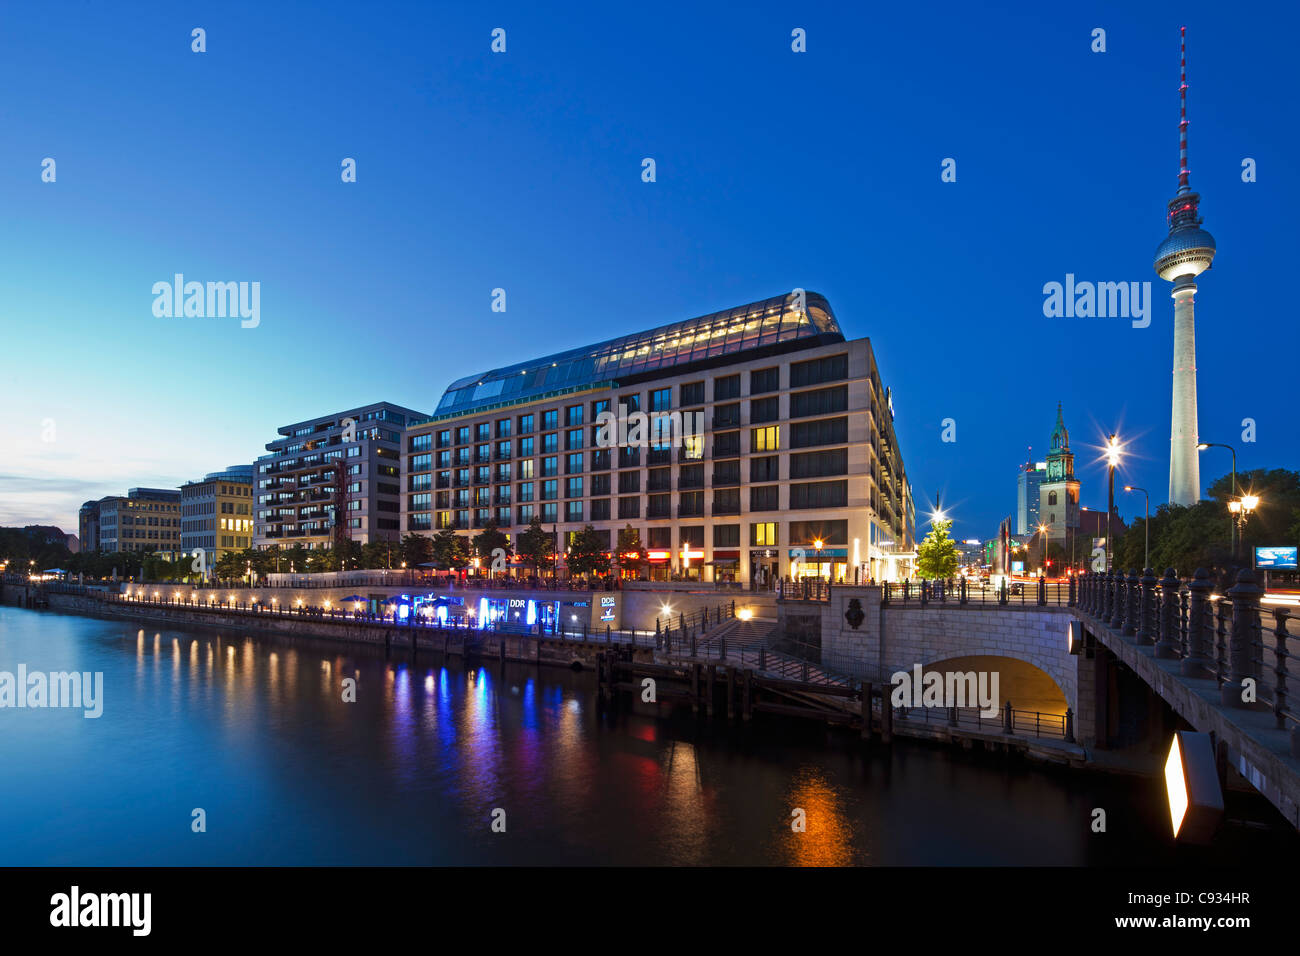 Twilight view of the Radisson Blu Hotel with the Berlin Fernsehturm Tower in the background, Mitte, Berlin, Germany. - Stock Image